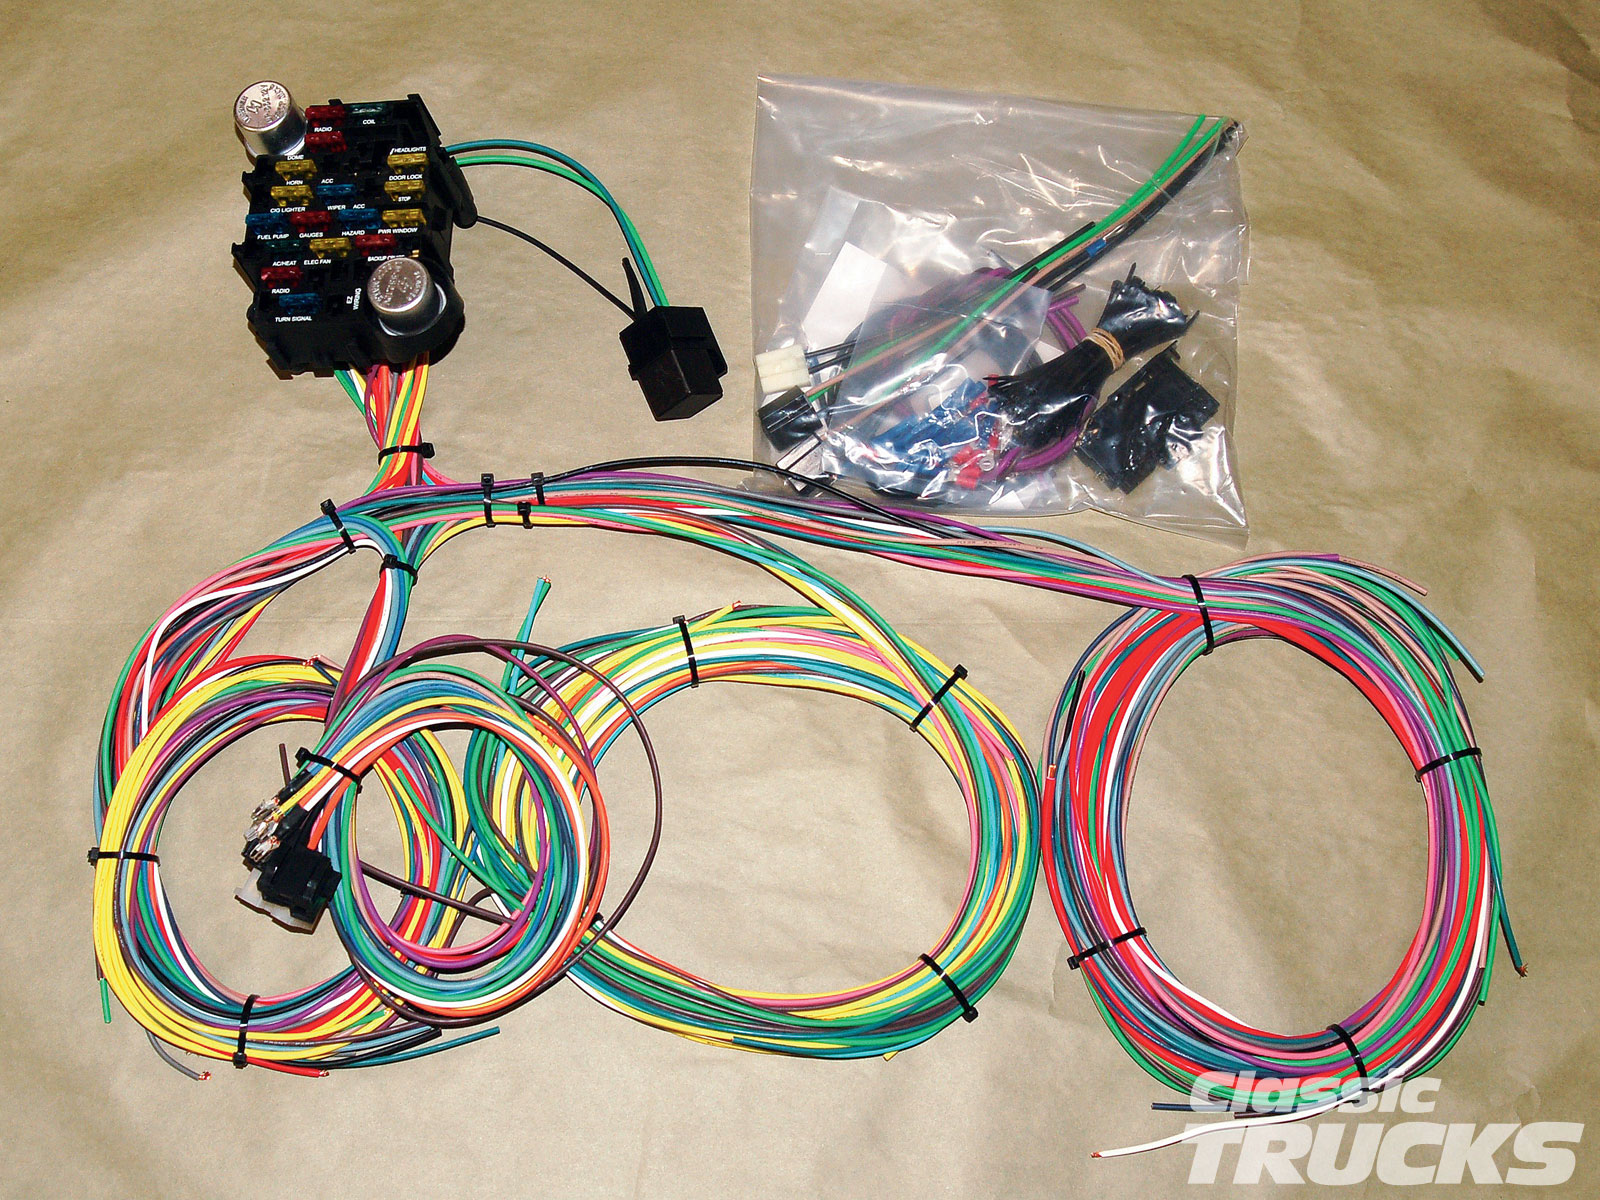 1010clt 02 o aftermarket wiring harness install kit?resize\\\=665%2C499 painless wiring harness australia tamahuproject org painless wiring harness australia at webbmarketing.co